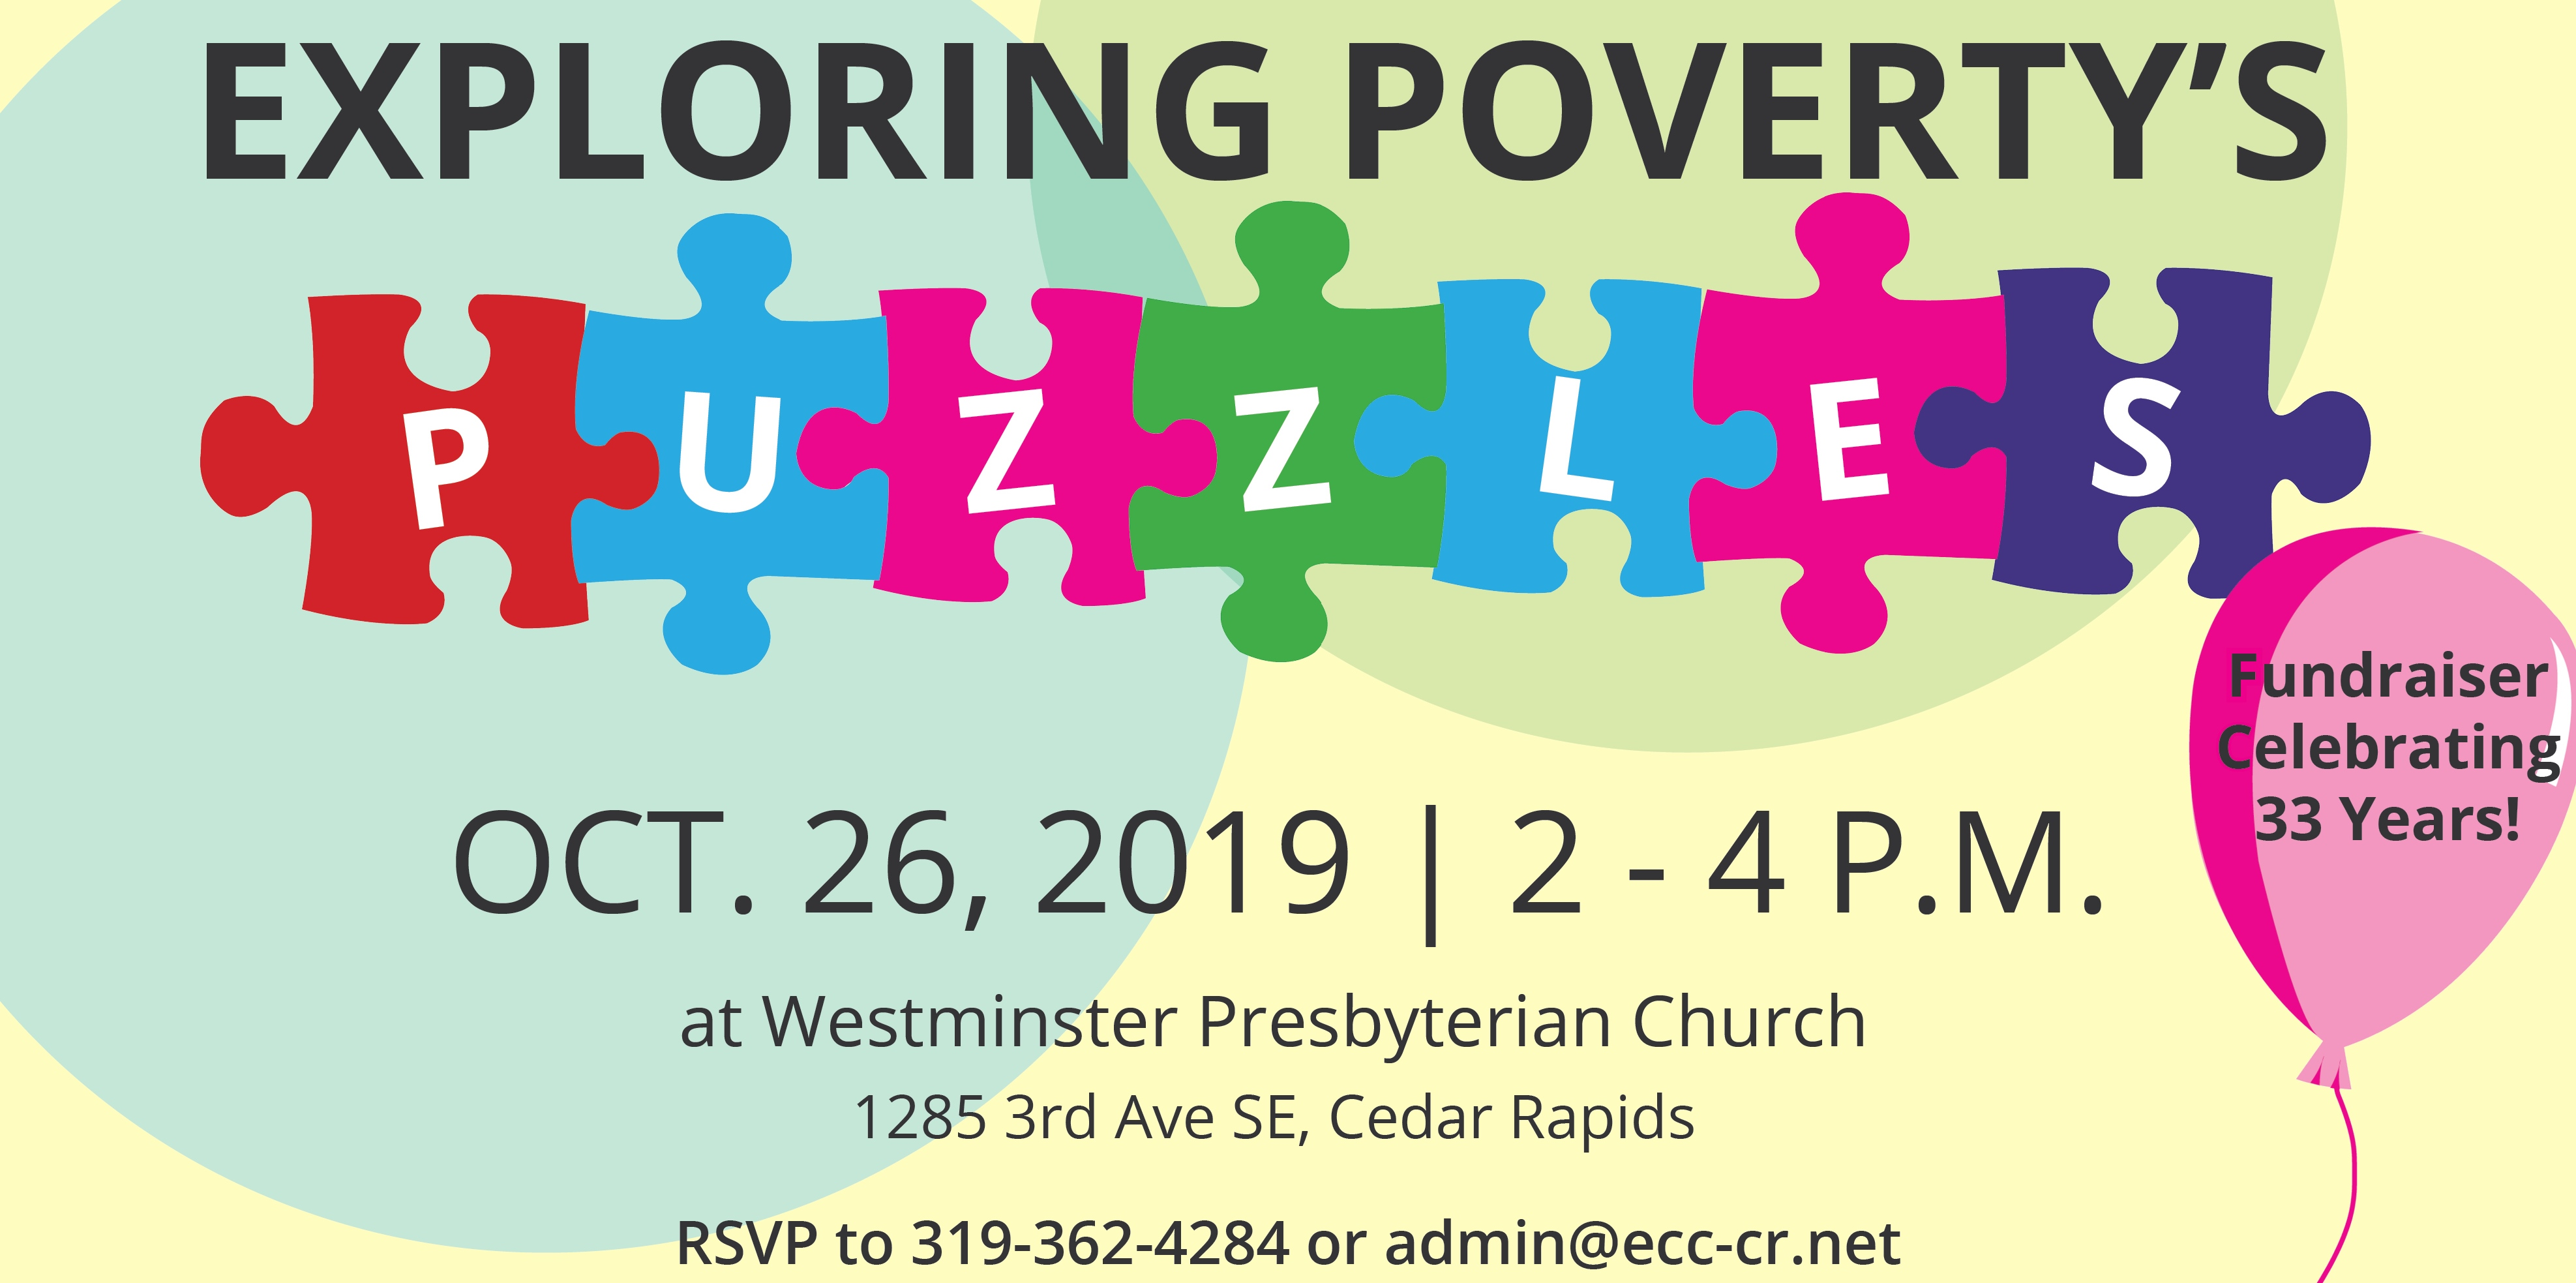 Exploring Poverty's Puzzles Save The Date Card